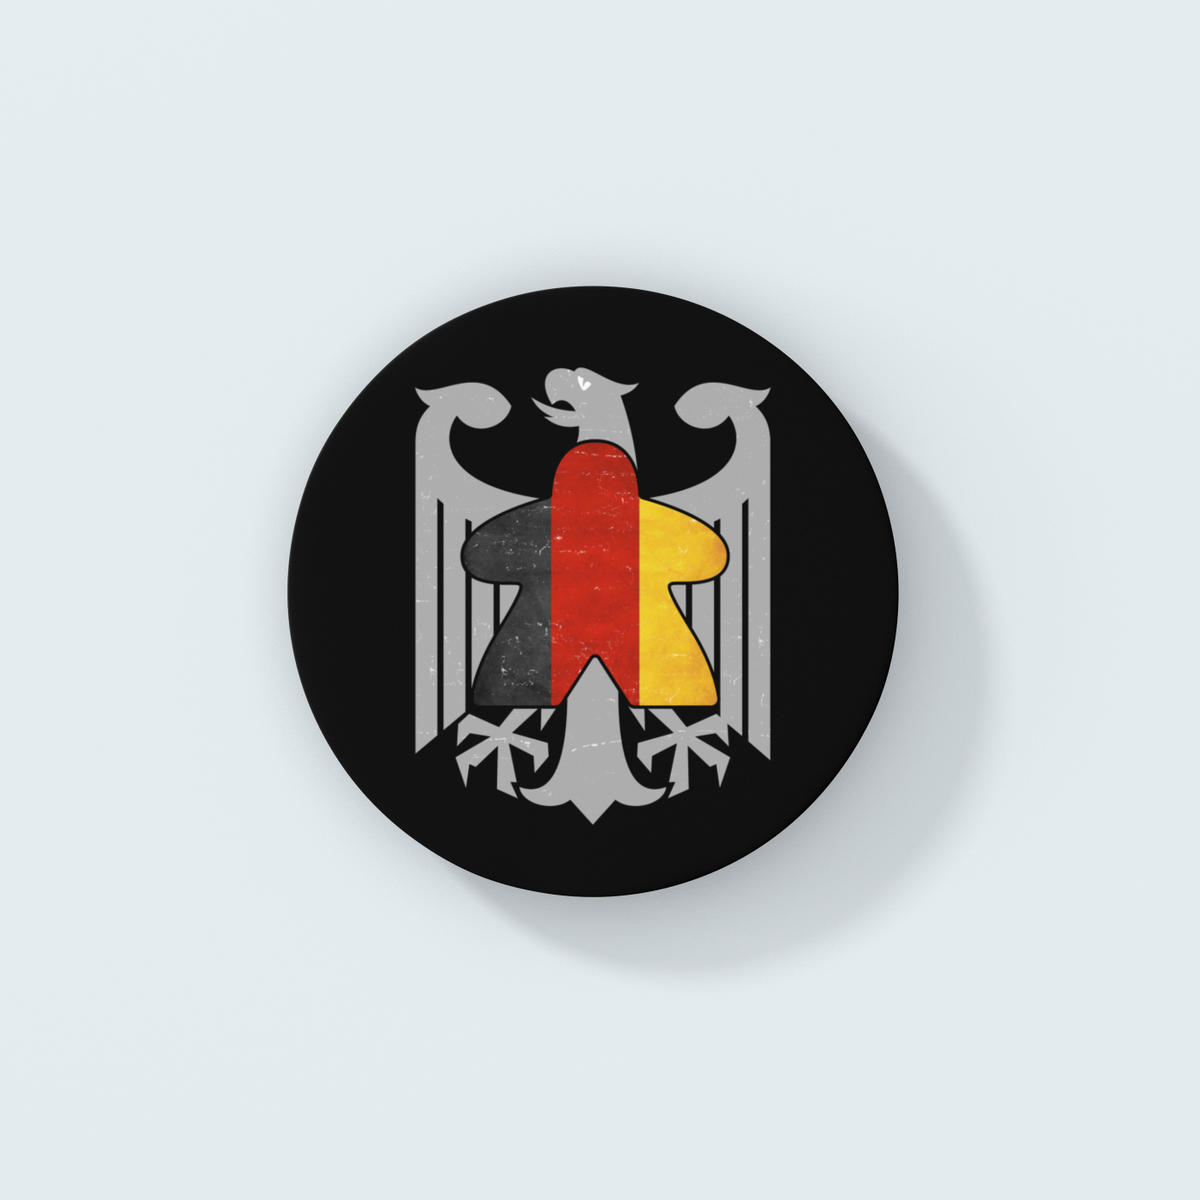 German Flag Meeple Board Game Coaster